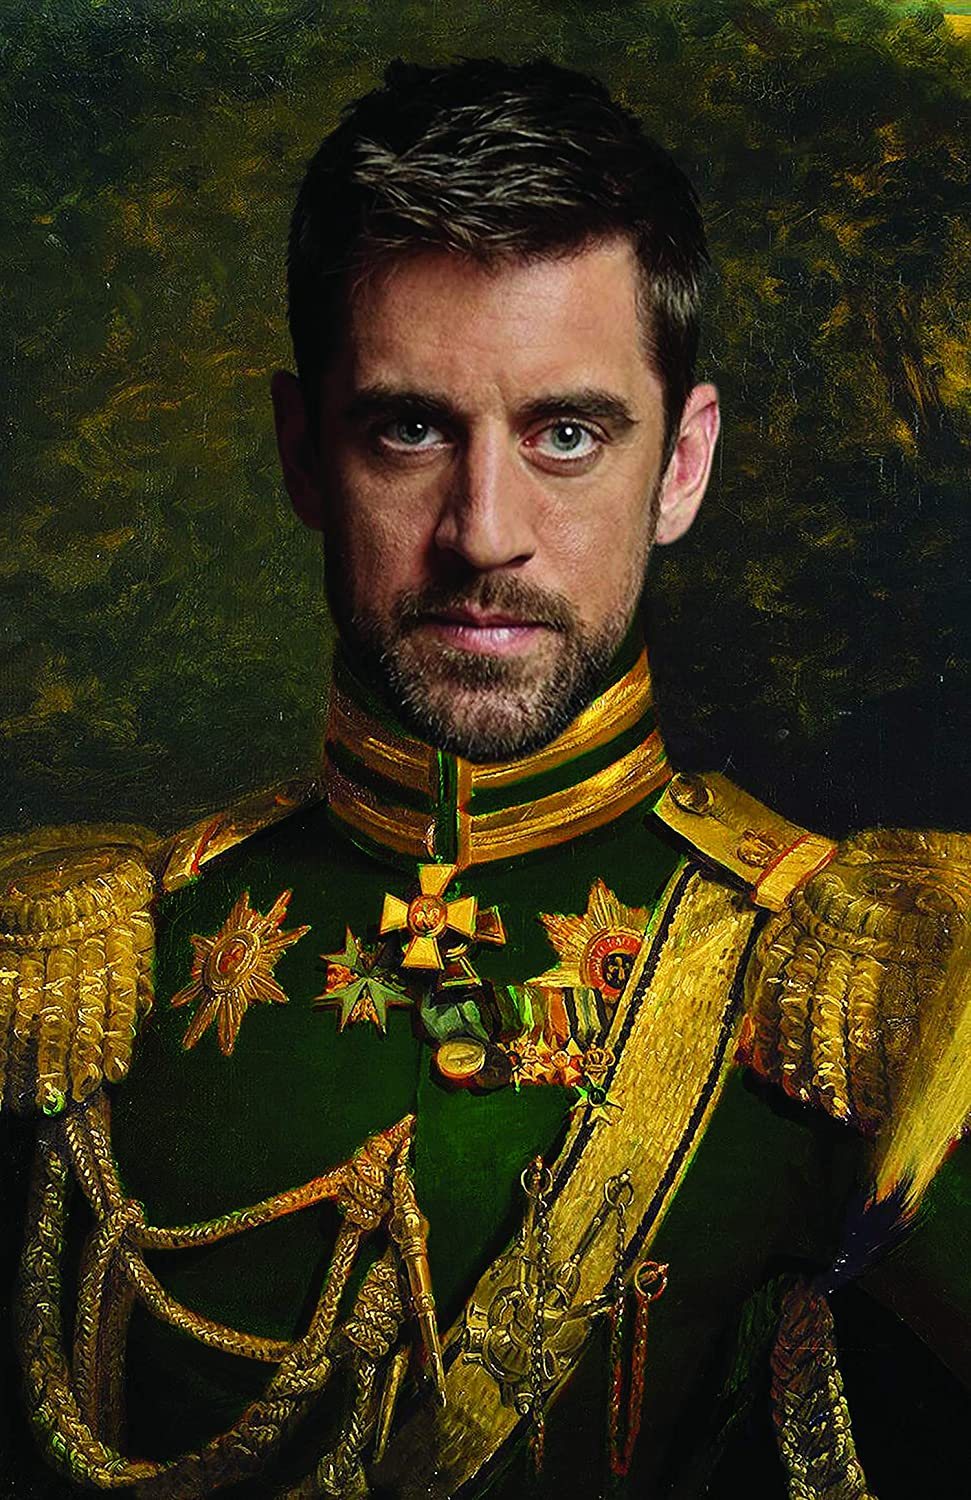 Amazon Com Aaron Rodgers Poster Funny Celebrity Art Faux Oil Painting Print Novelty Pop Culture Artwork Gift Posters Prints